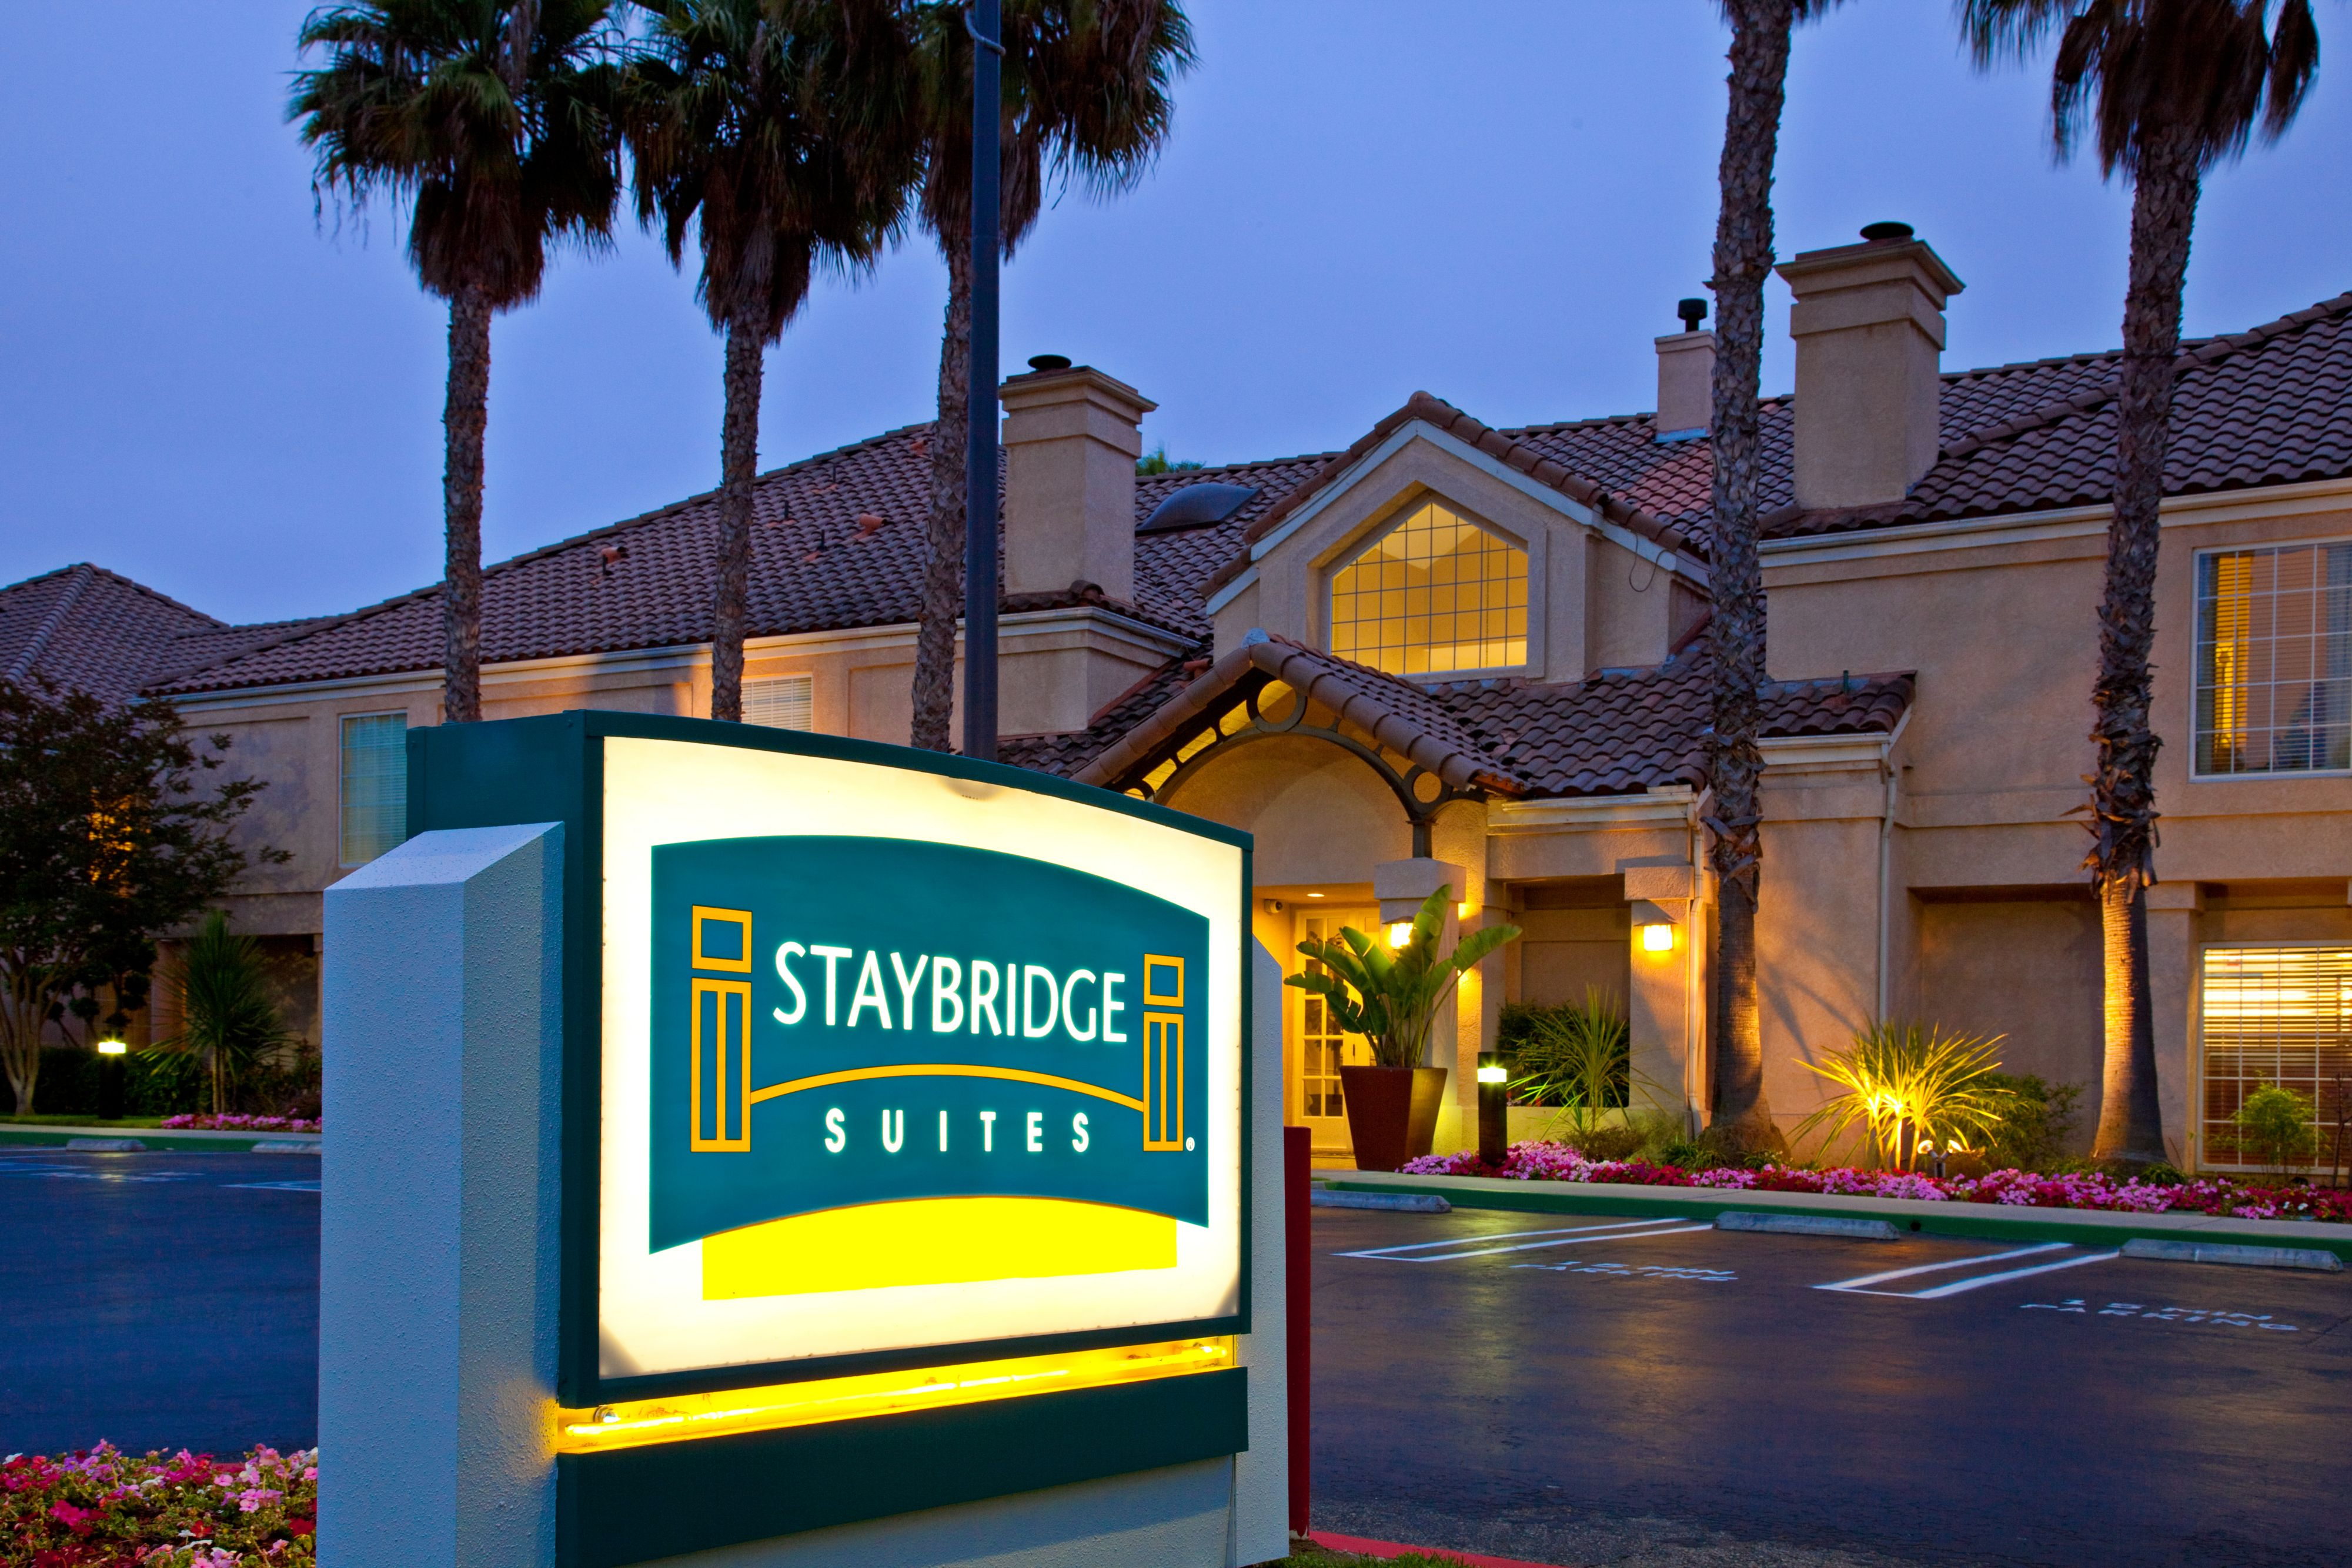 How to Save at Staybridge Suites